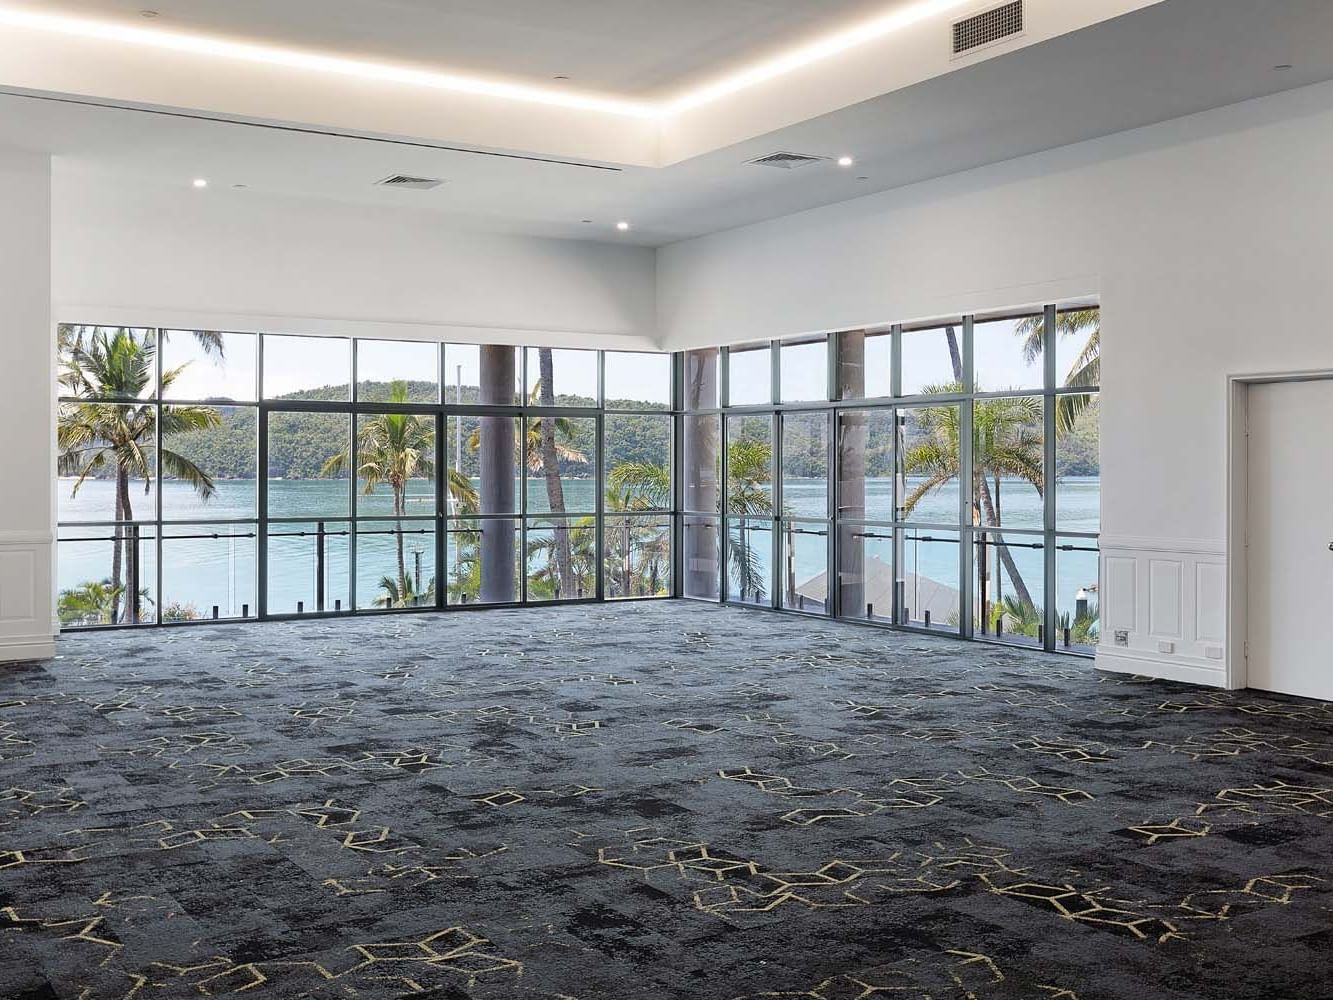 Event space at Horizon room at Daydream Island Resort